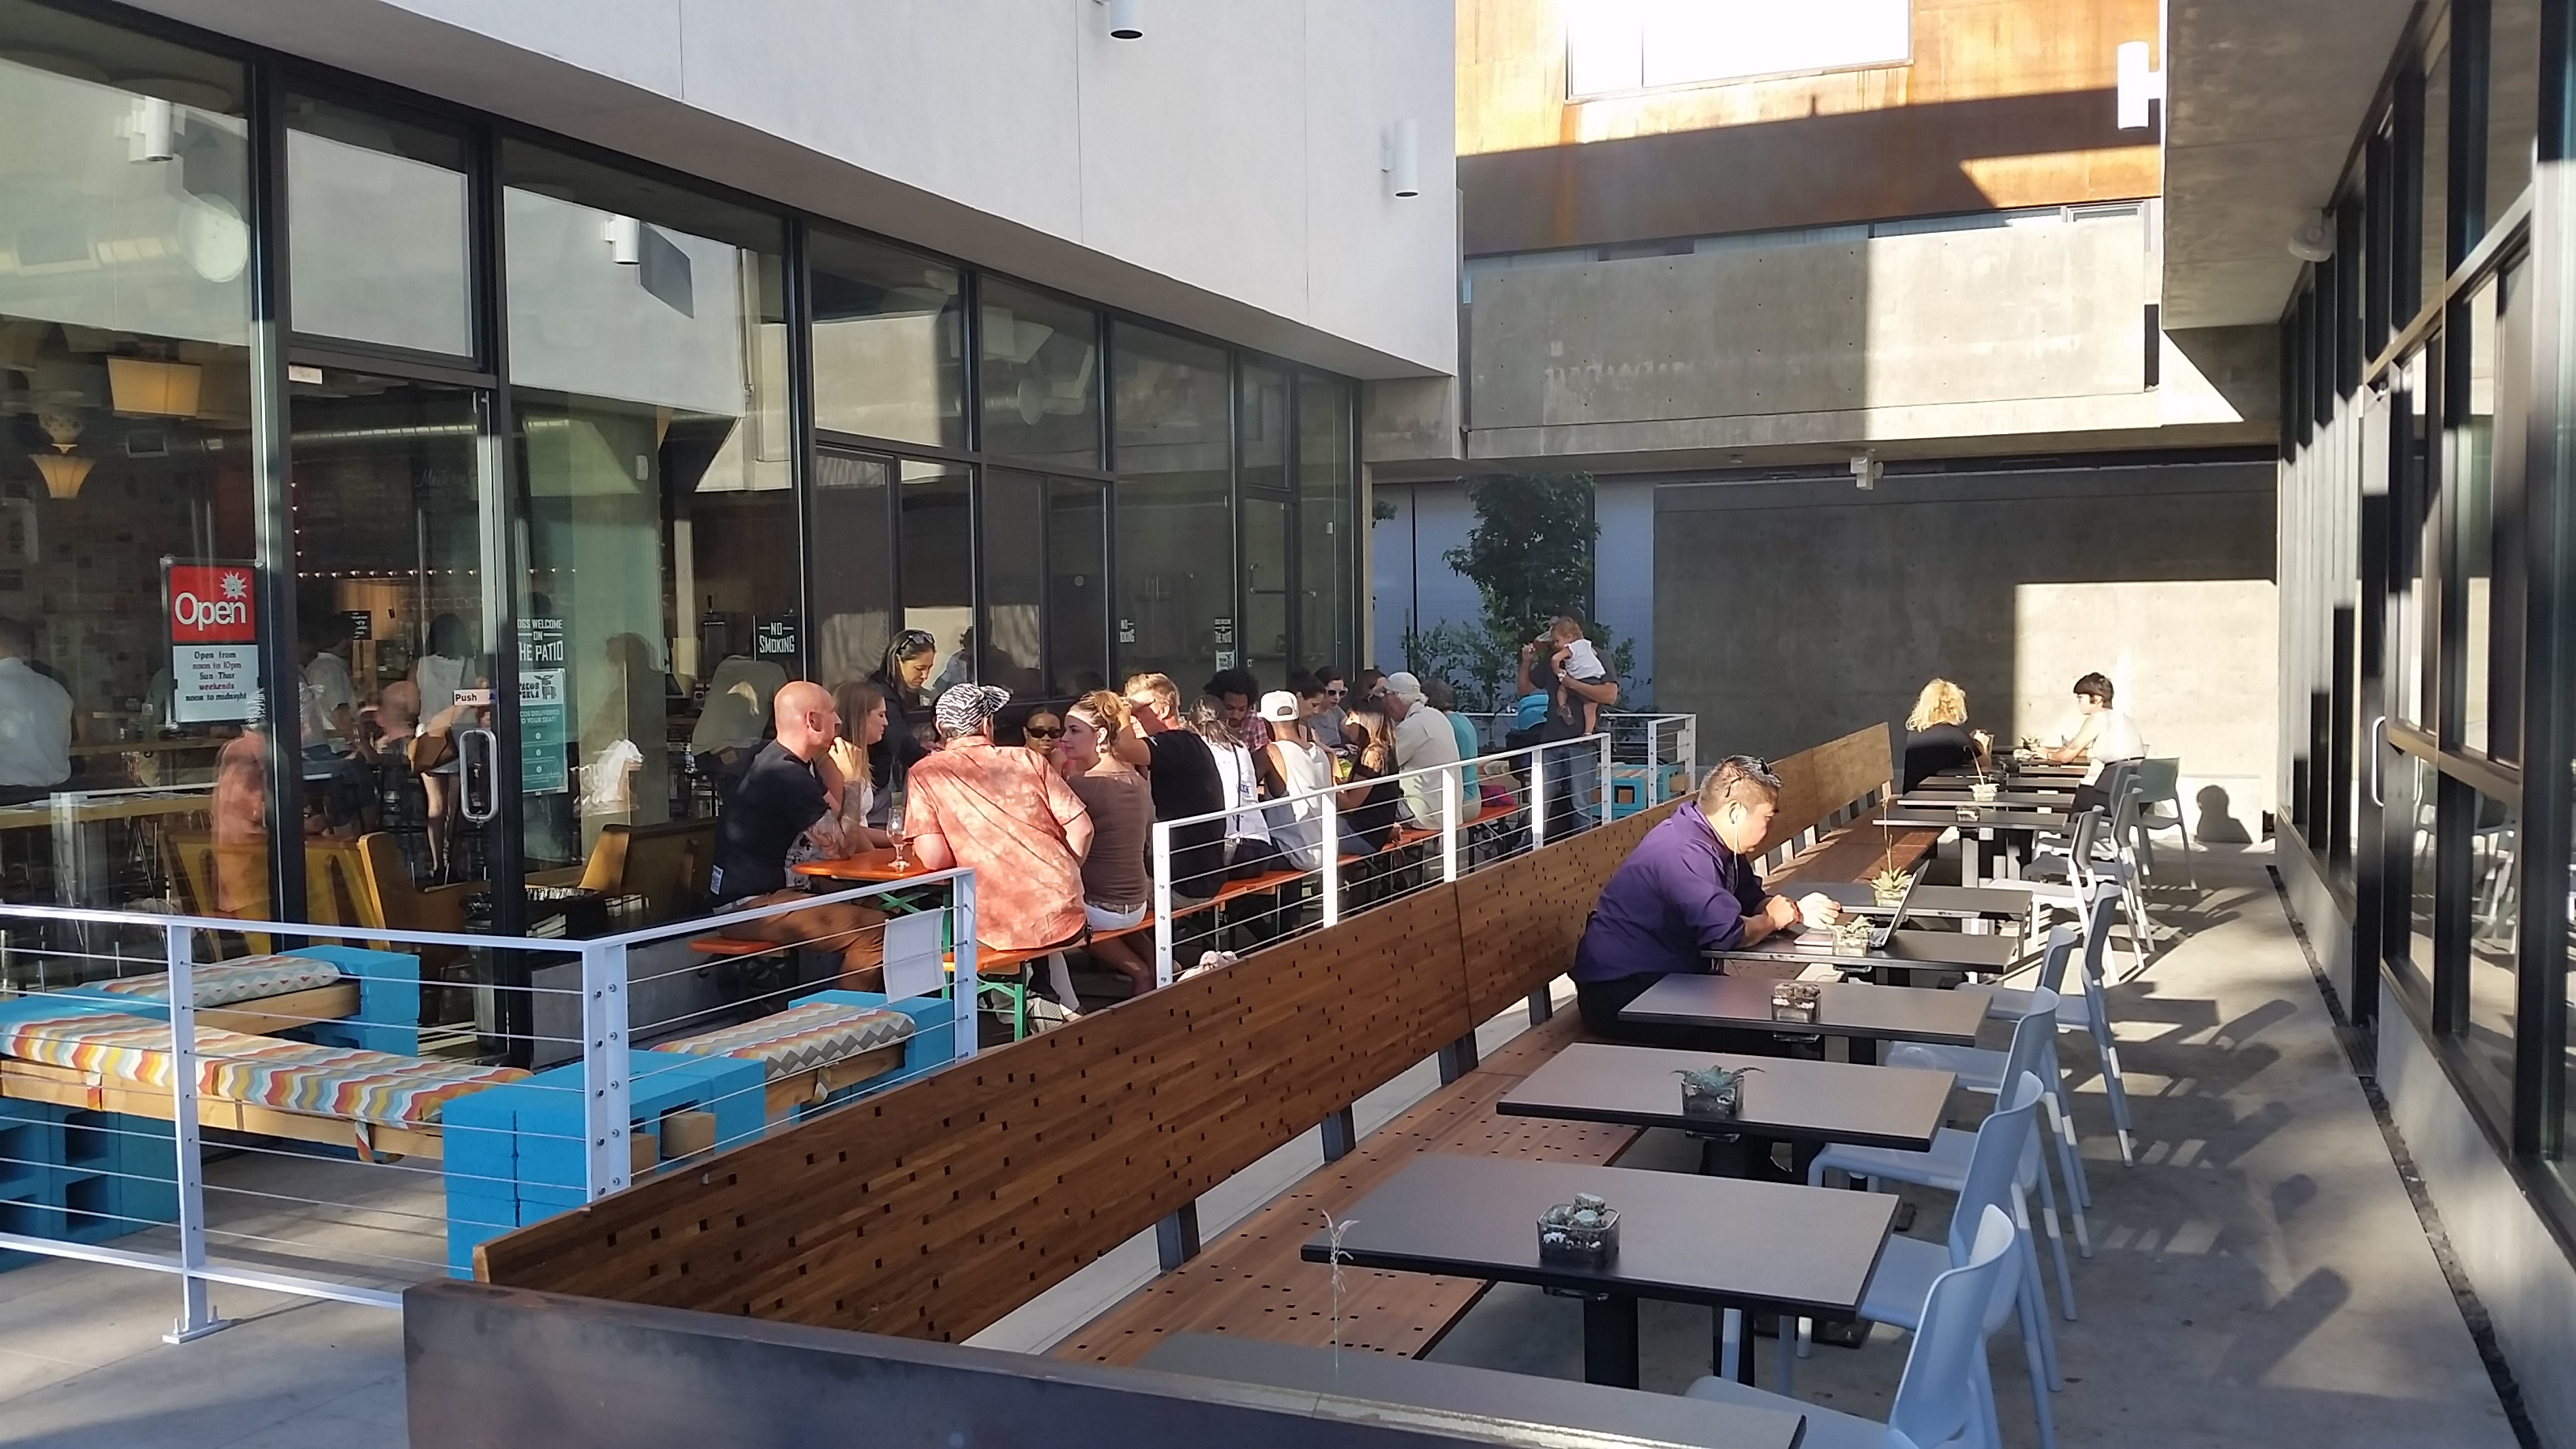 Exceptional Modern Times Flavordome Brewery Tasting Room Patio Meets Influx Cafe Patio  At The North Parker Building